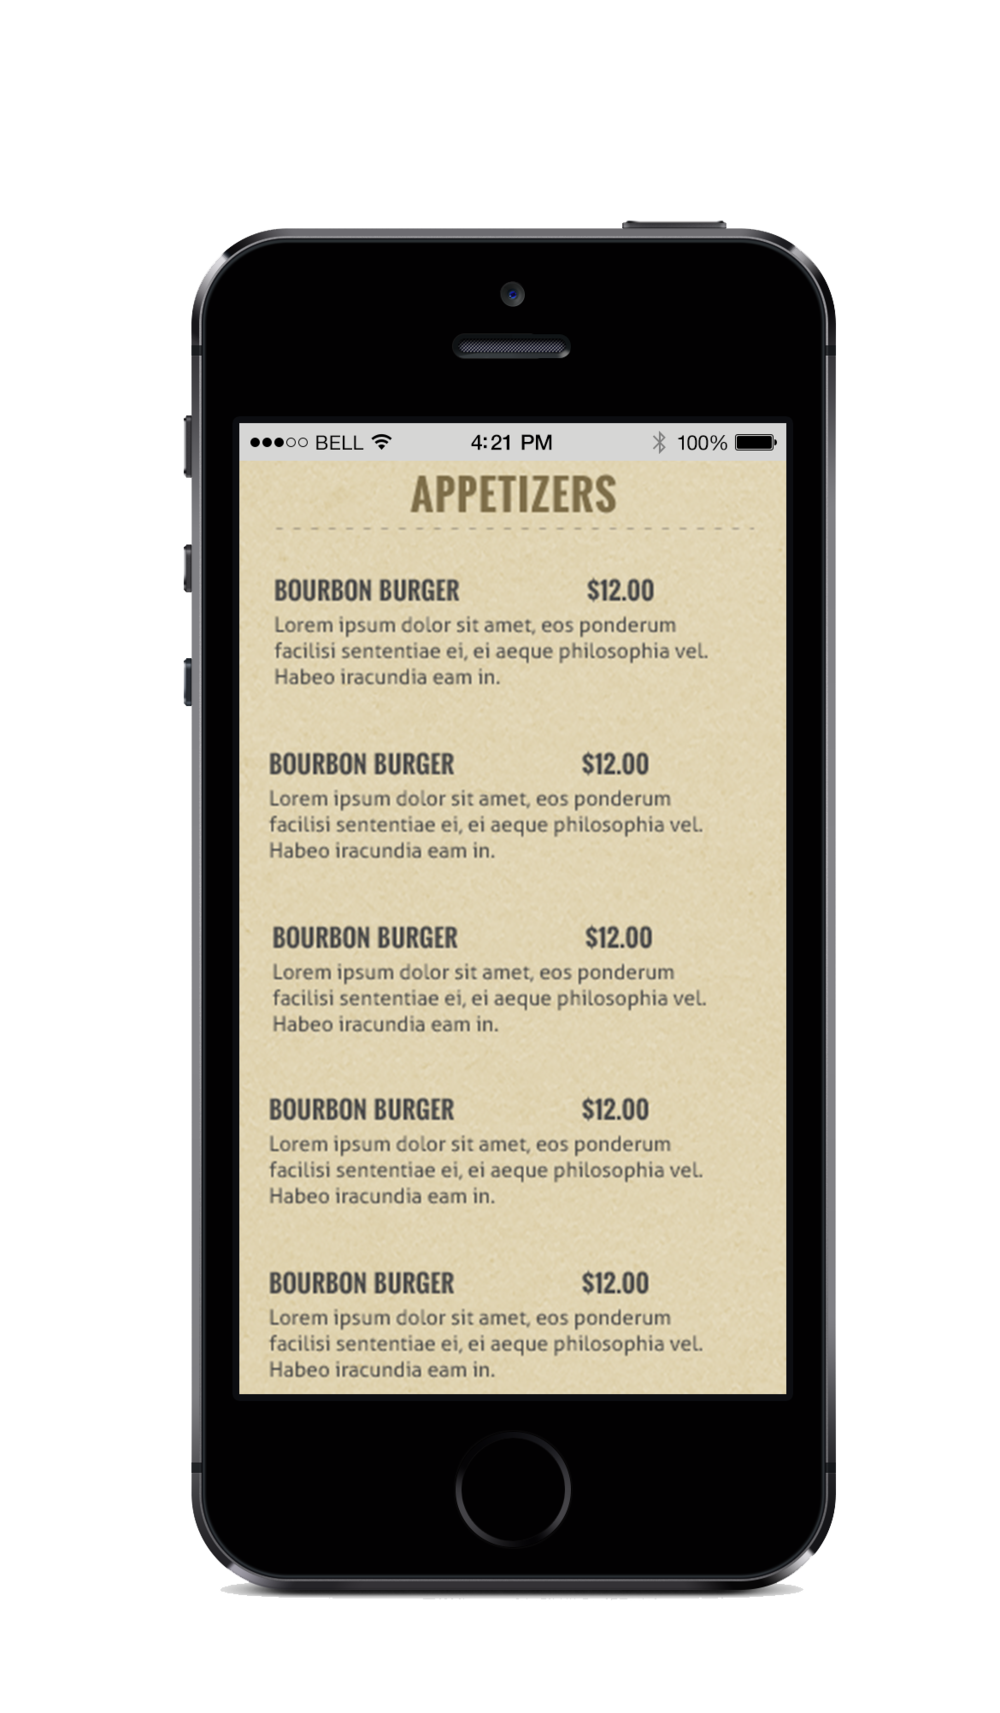 BourbonBlue-Dining_Mobile_Appitizers.png